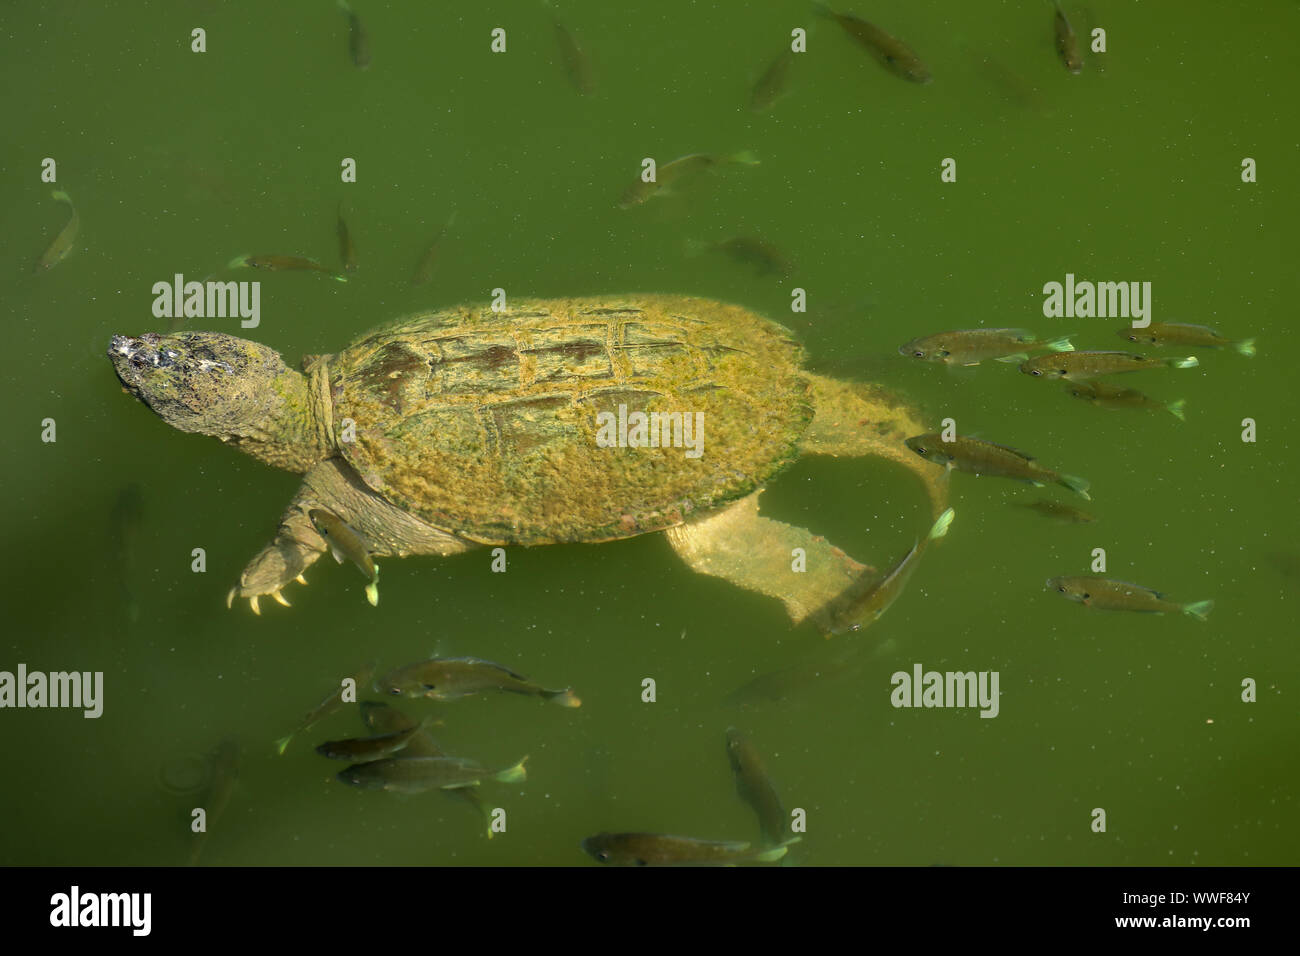 snapping turtle, Chelydra serpentina, and bluegills, Lepomis macrochirus, bluegills attempting to feed on the algae on turtle's carapace, Maryland Stock Photo